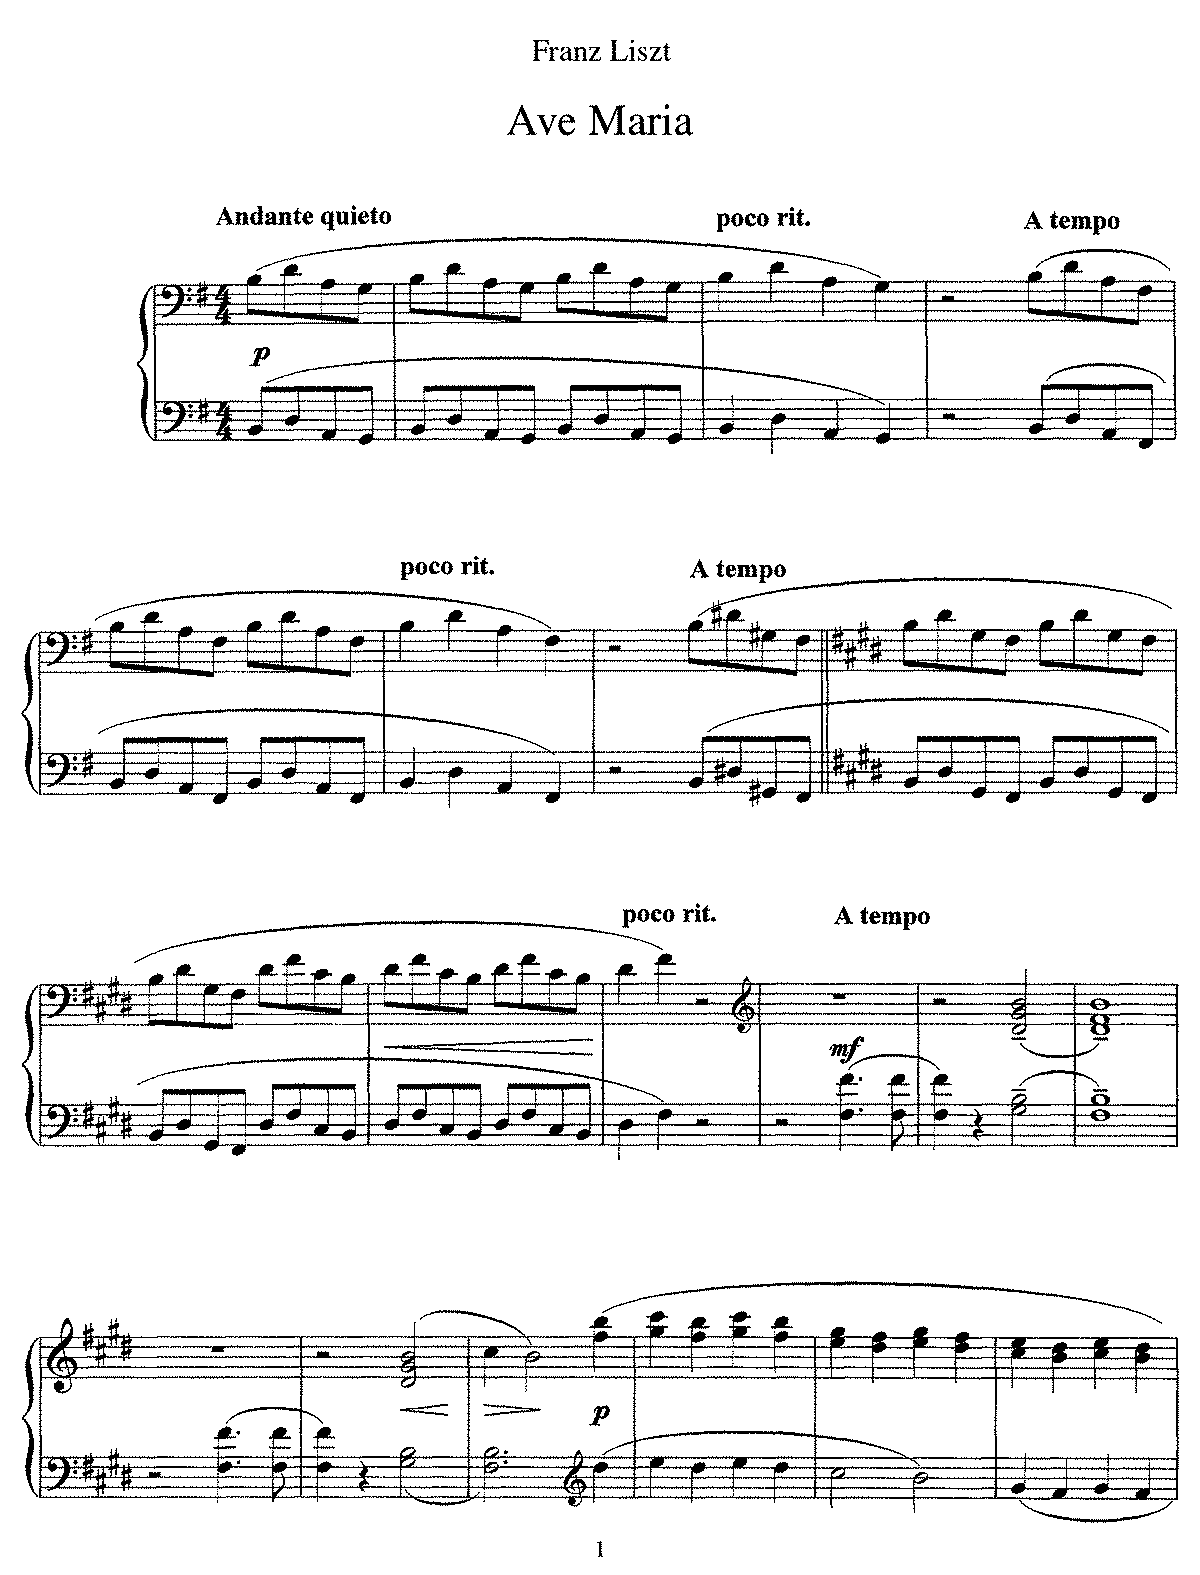 Liszt - S545 Ave Maria in G.pdf